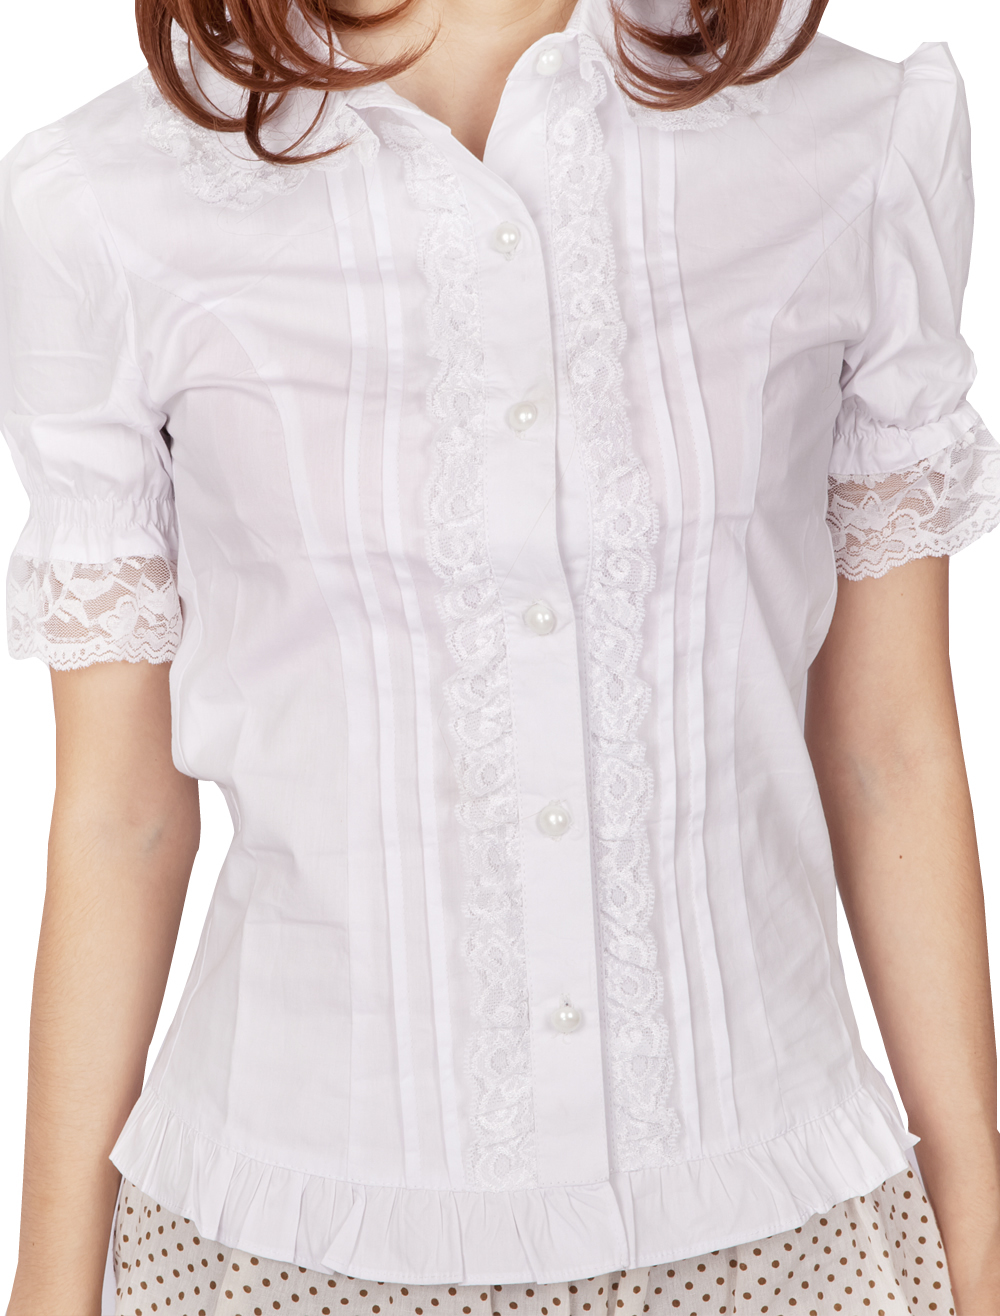 Primary image for White Cotton Ruffle Lace Victorian Short Sleeve Lolita Shirt Blouse